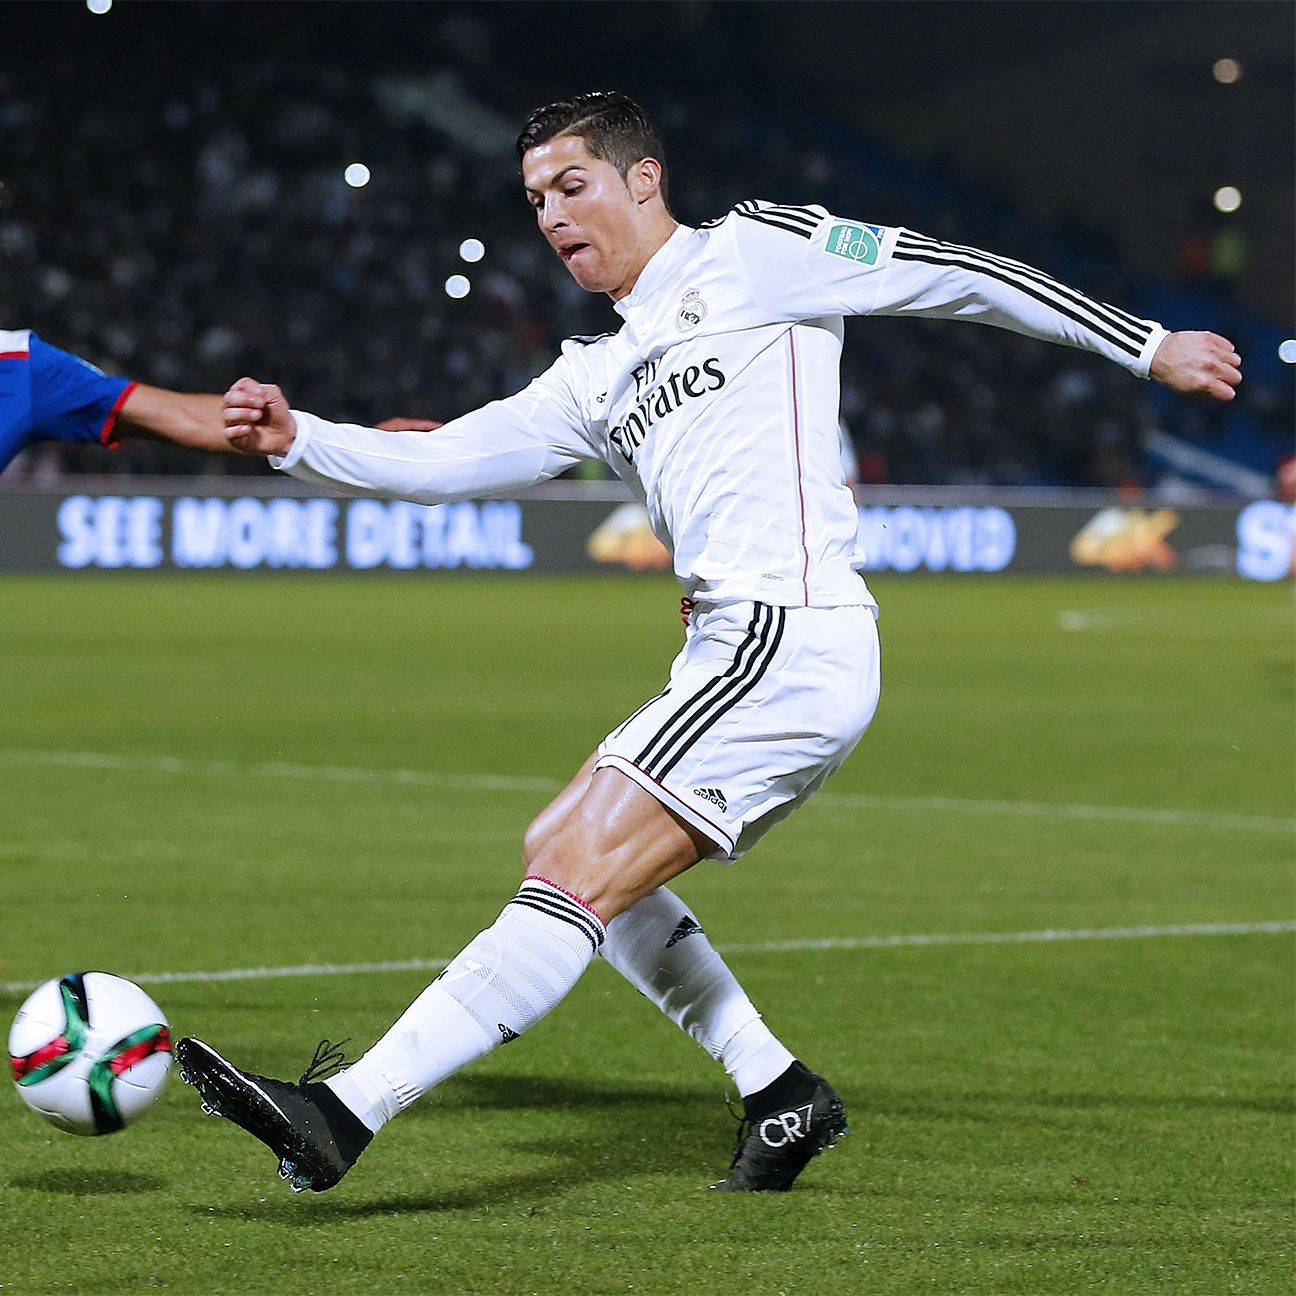 Cristiano Ronaldo upped his season assist total to 12 after setting up two Real scores in Tuesday's win over Cruz Azul.